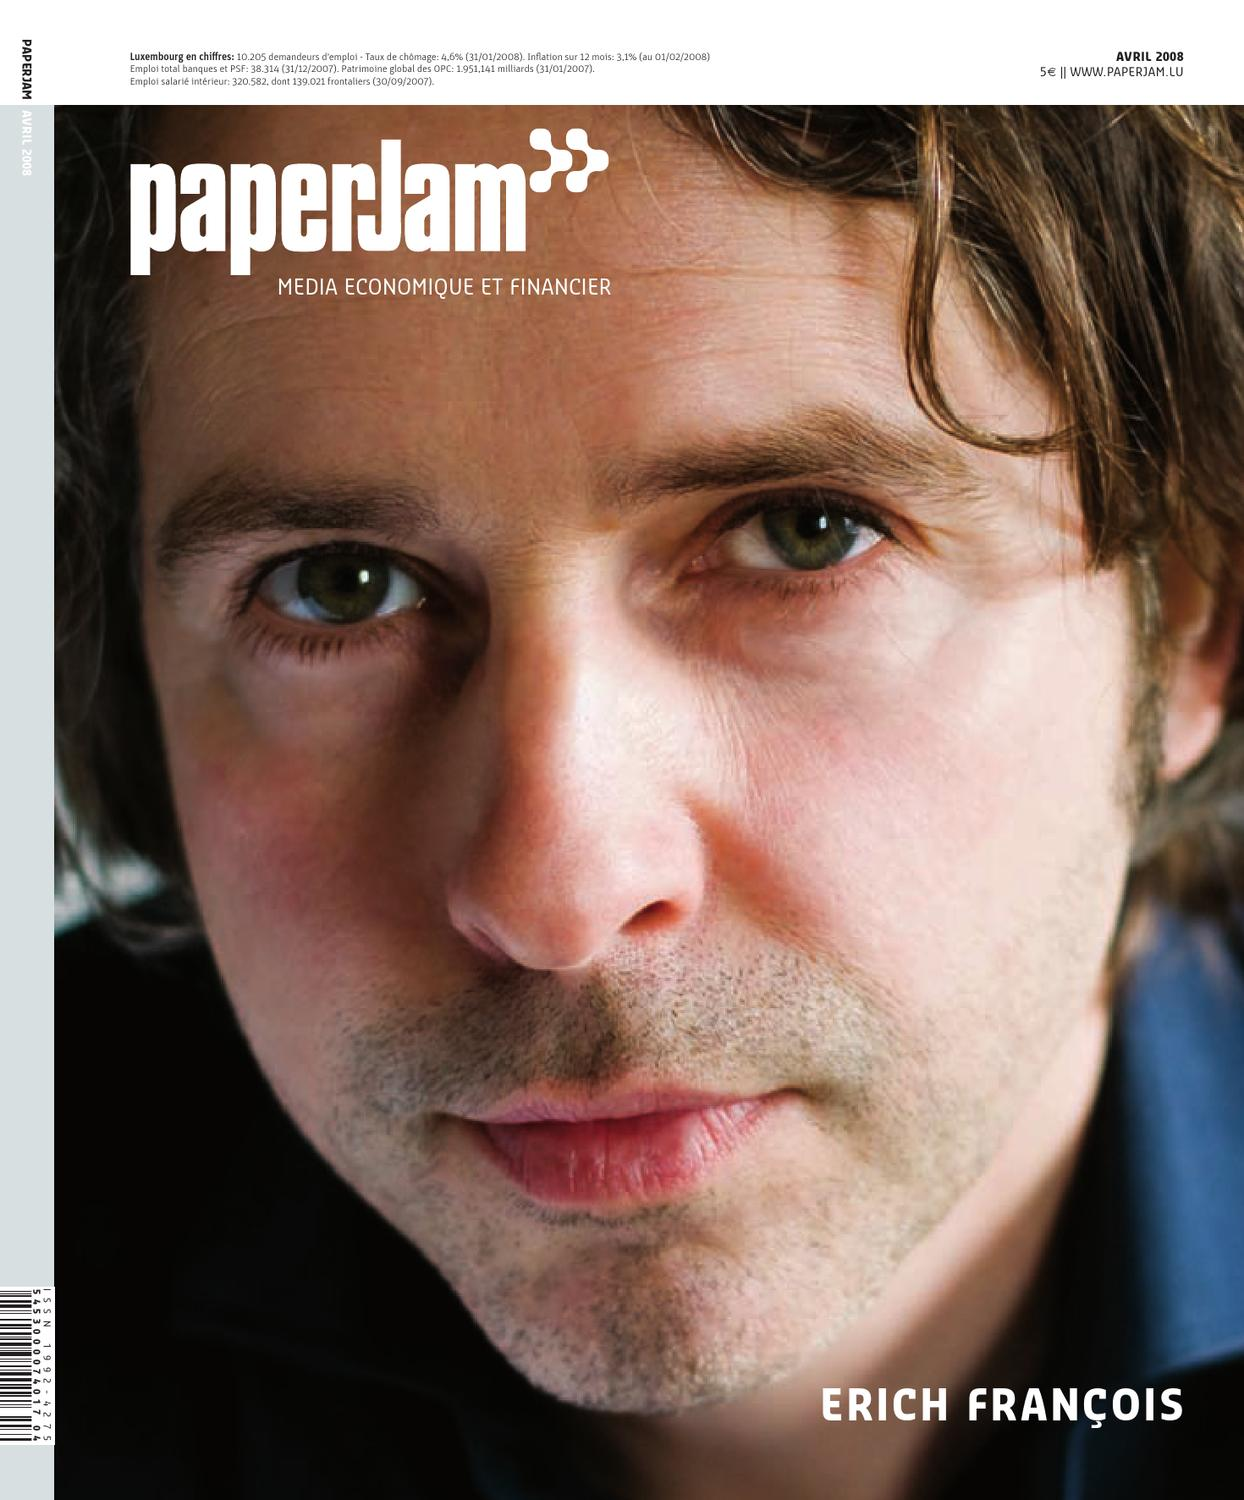 paperJam avril 2008 by Maison Moderne - issuu 1afaefd4f55